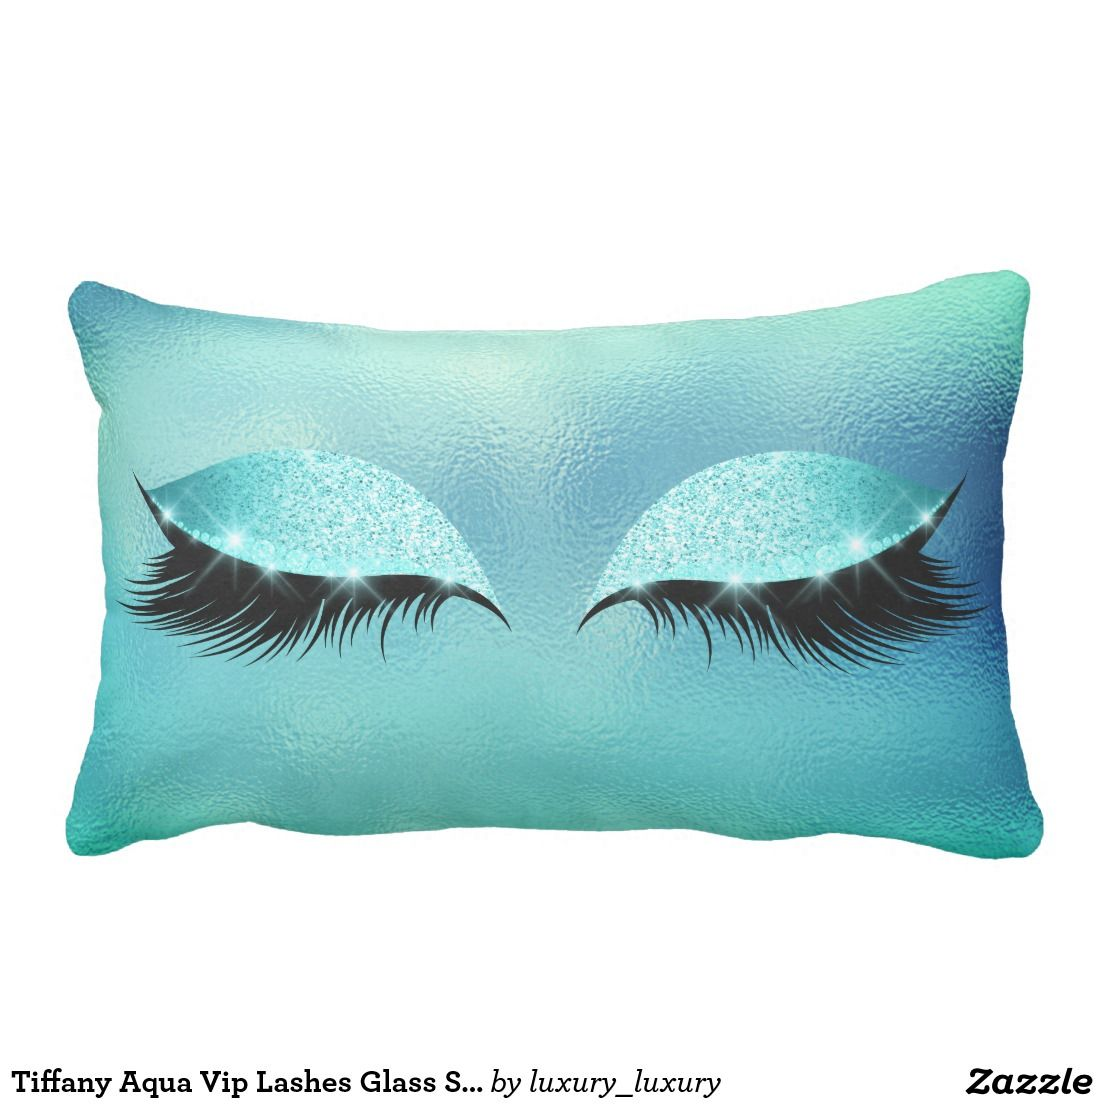 Cuscini Color Tiffany.Tiffany Aqua Vip Lashes Glass Sleep Glitter Makeup Lumbar Cushion